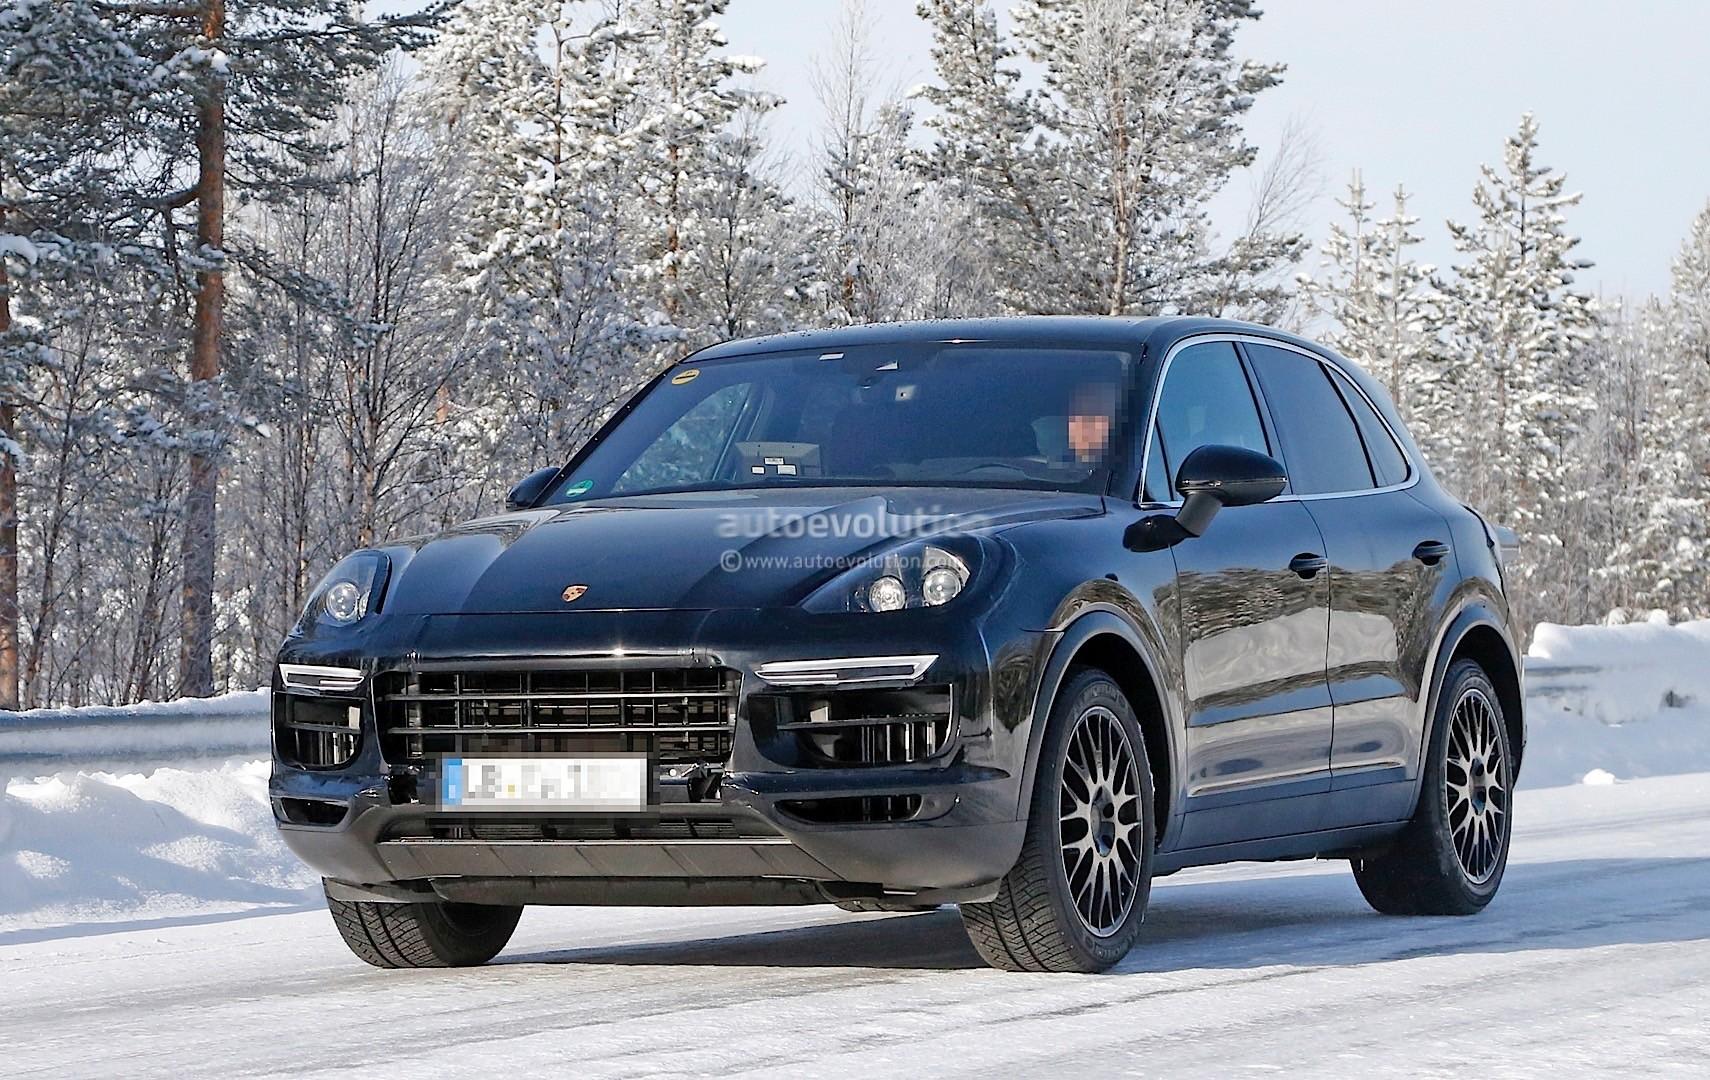 2018-porsche-cayenne-spied-once-more-enjoying-the-last-bits-of-winter_2